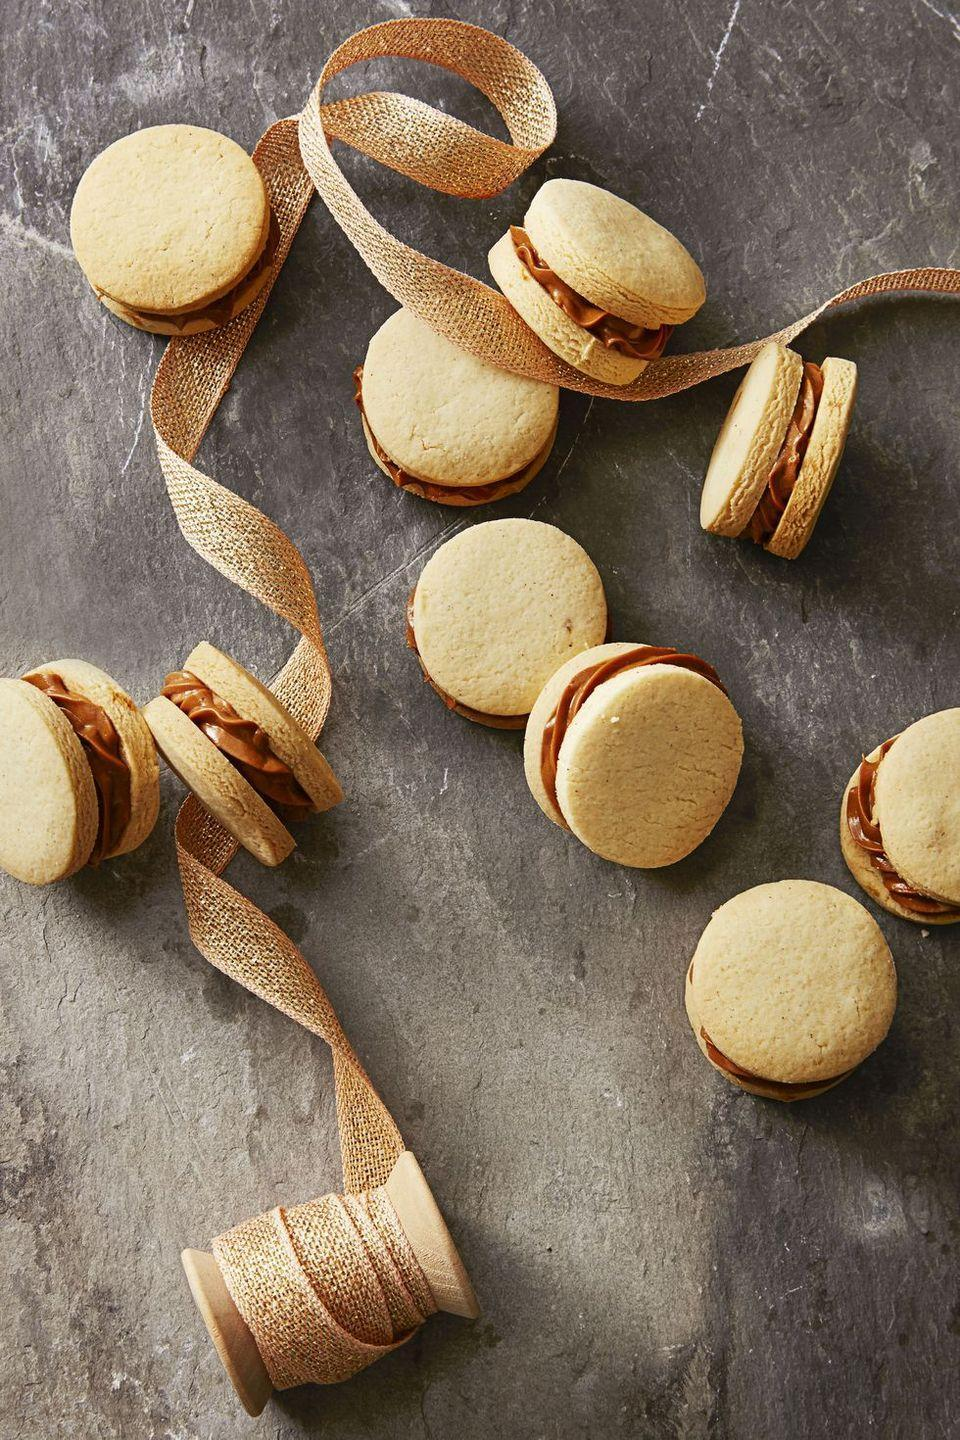 "<p>Don't forget dessert! With a creamy caramel filling, these cookies certainly aren't your average sandwich.</p><p><em><a href=""https://www.goodhousekeeping.com/food-recipes/dessert/a35757/dulce-de-leche-sandwiches/"" rel=""nofollow noopener"" target=""_blank"" data-ylk=""slk:Get the recipe for Dulce De Leche Sandwiches »"" class=""link rapid-noclick-resp"">Get the recipe for Dulce De Leche Sandwiches »</a></em></p>"